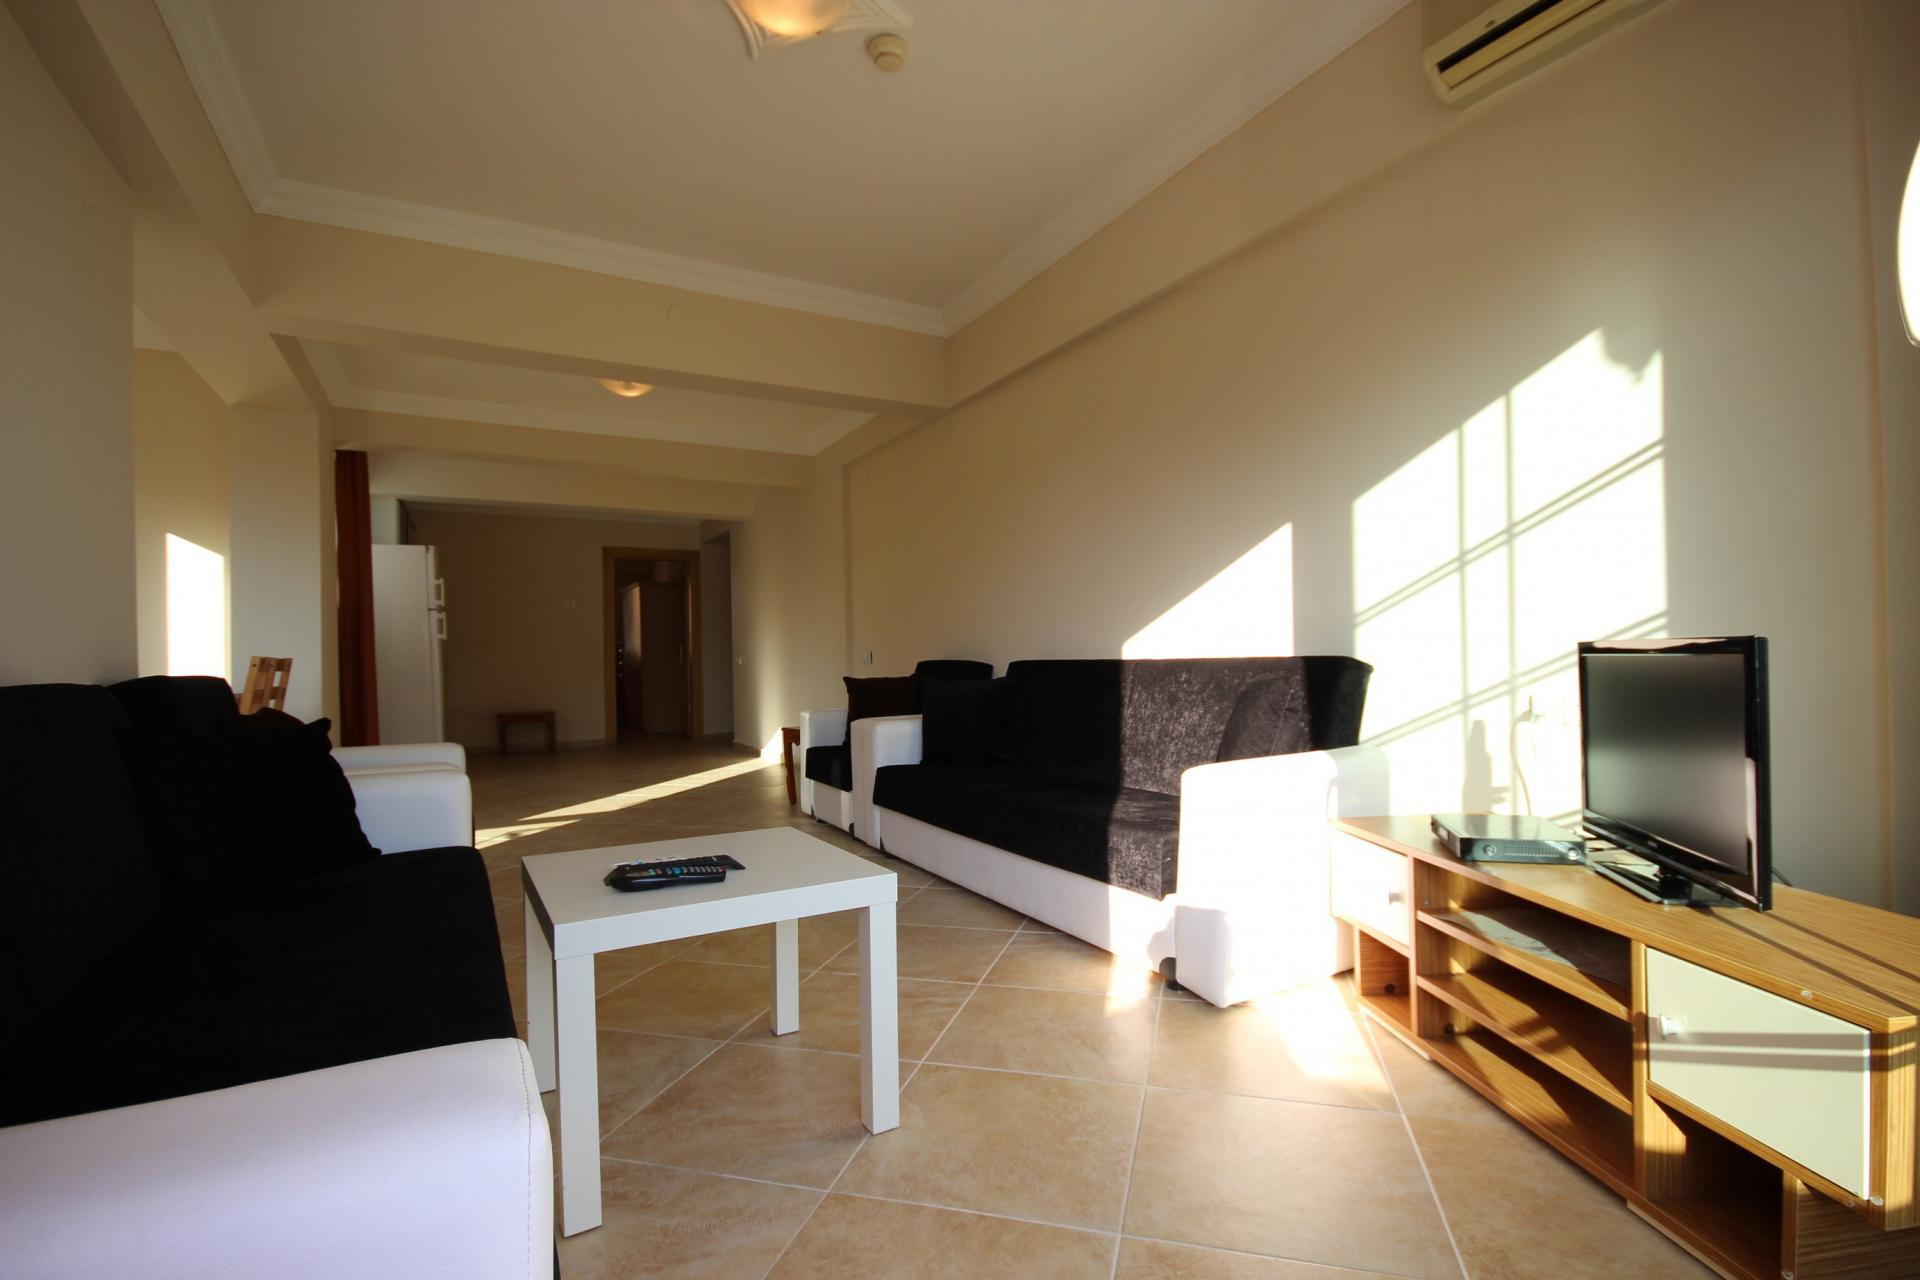 2 bedroom apartment for rent 3 best price for private - 2 and 3 bedroom apartments for rent ...